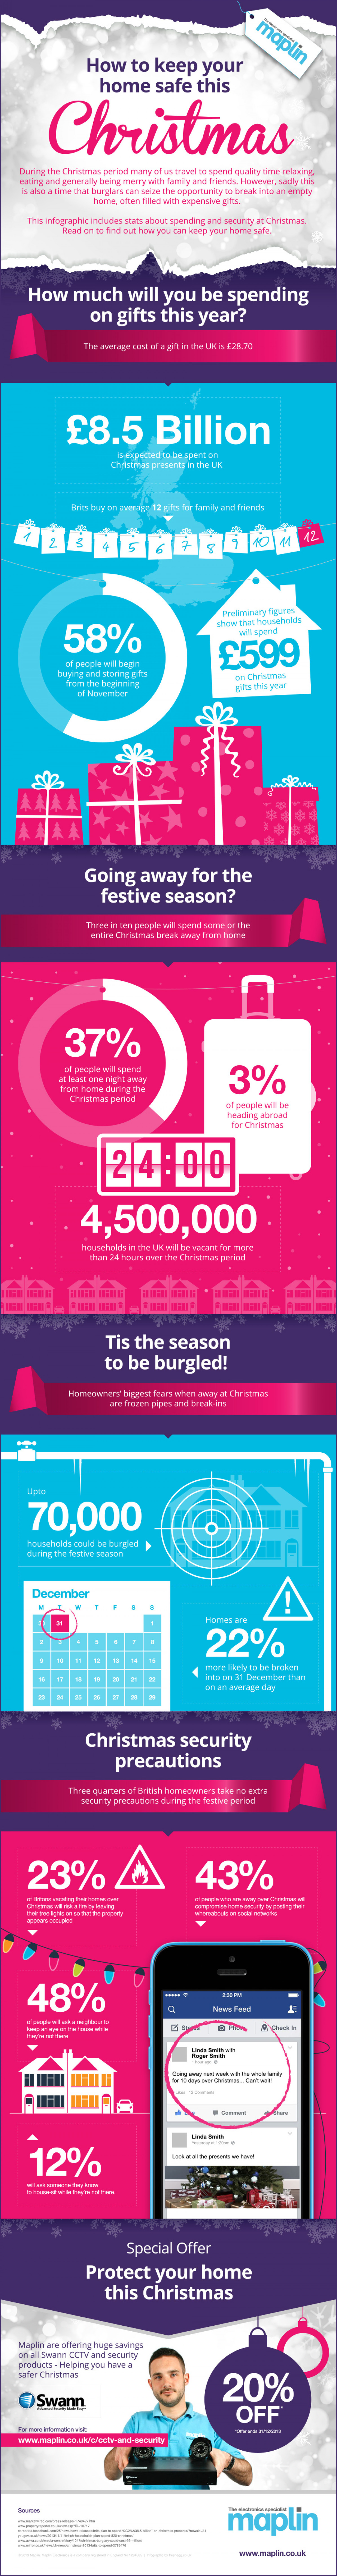 How to keep your home safe this Christmas Infographic